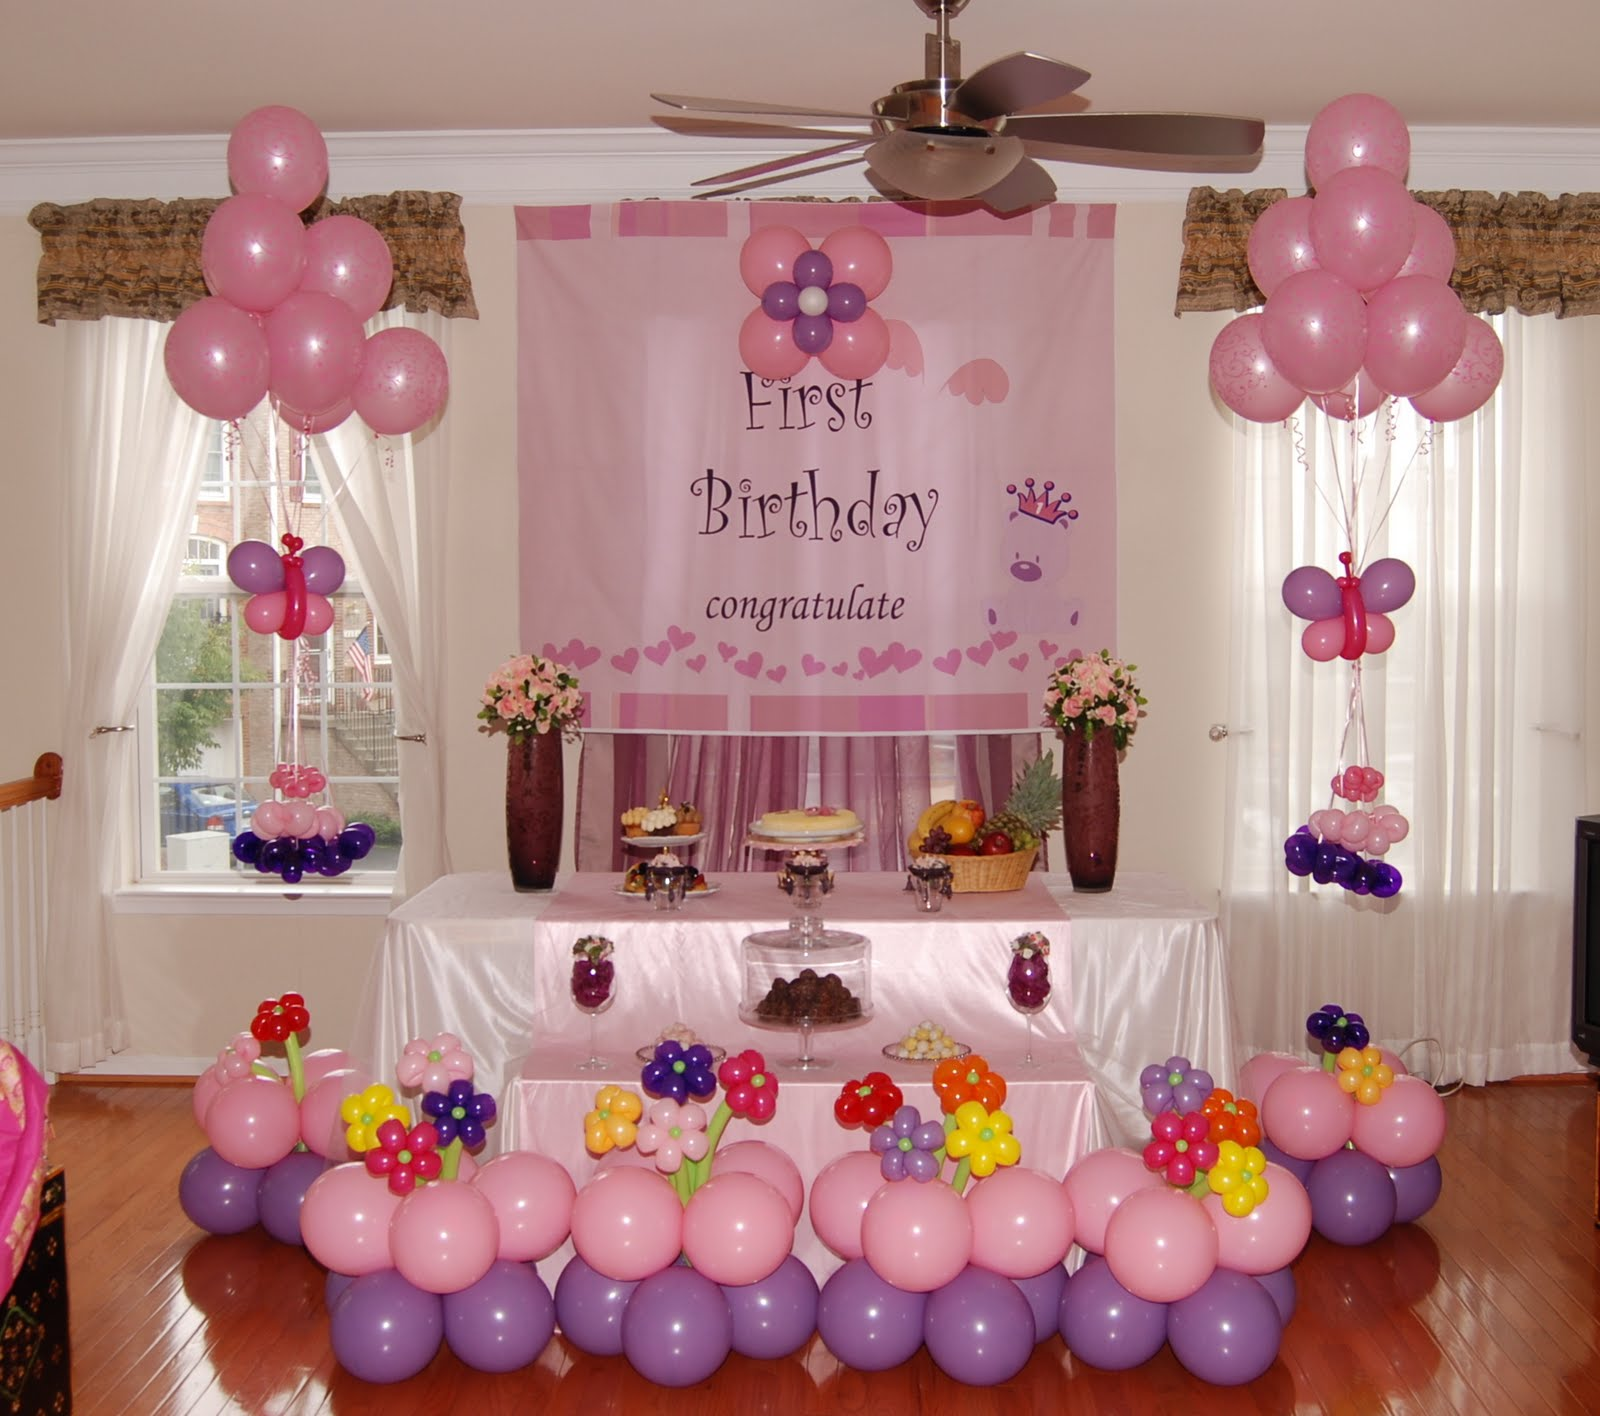 Simple Cake Table Decorations For Birthday